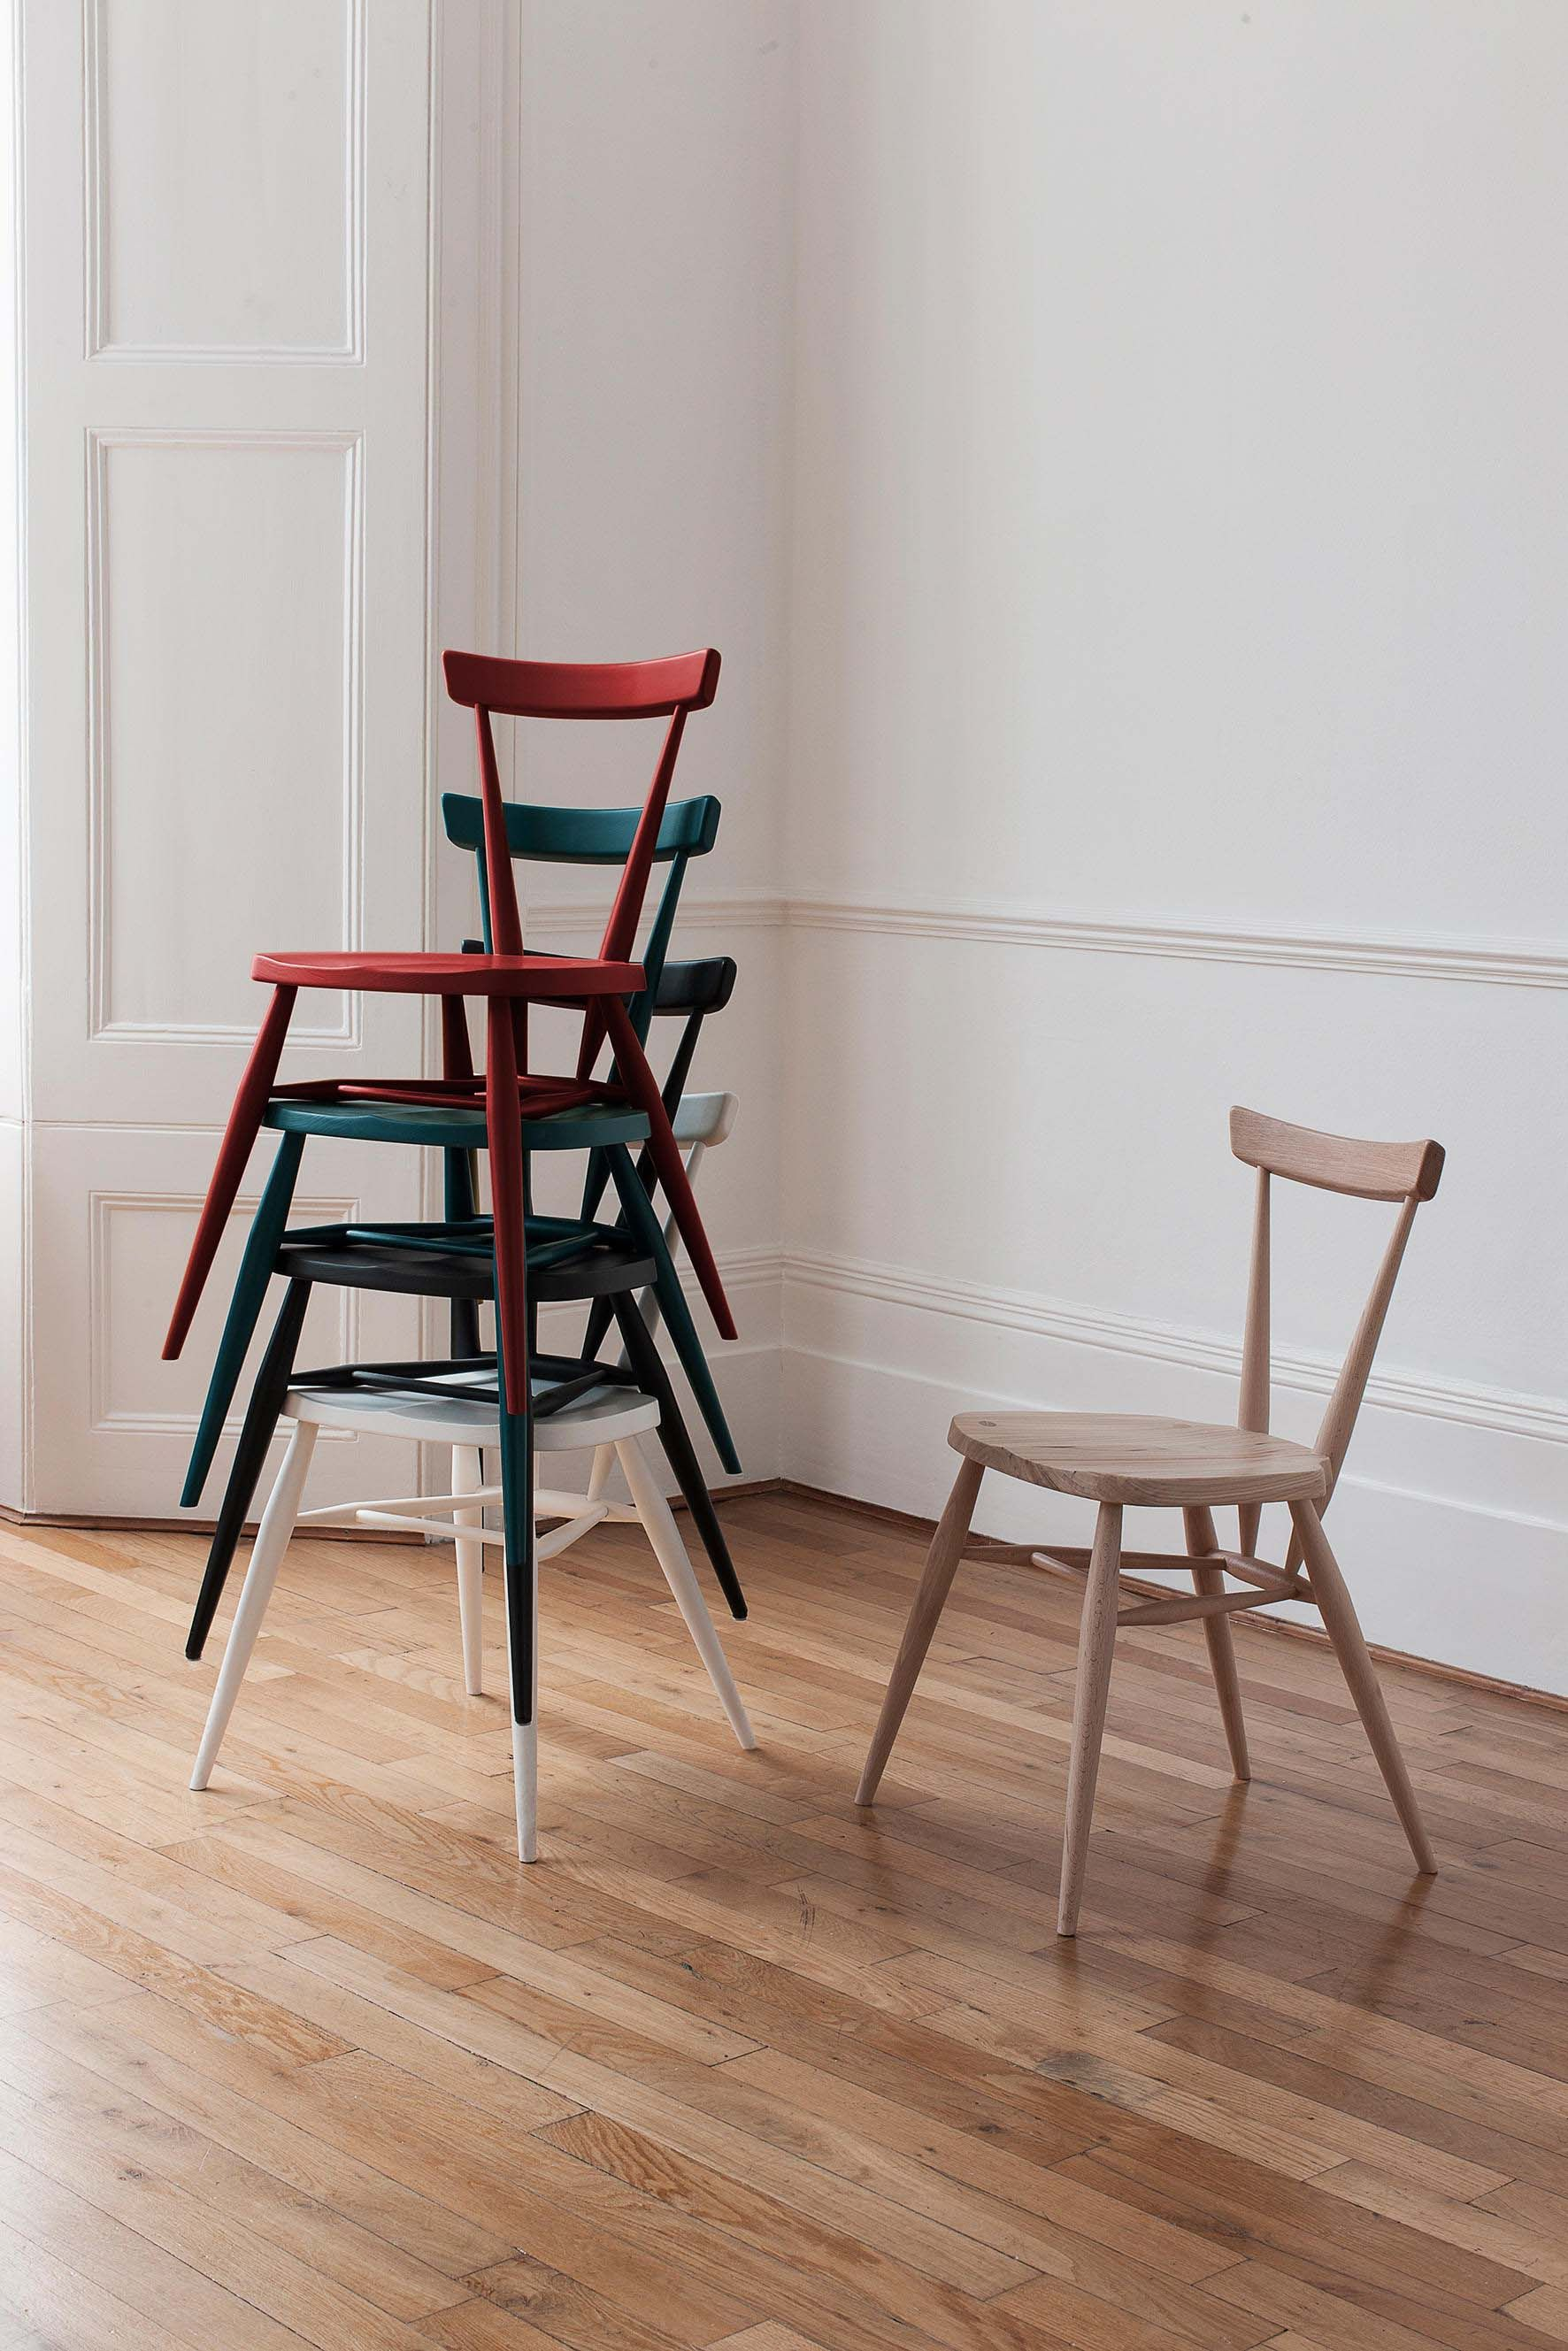 Shop The Whole Collection Of Ercol Furniture At Rouse Home